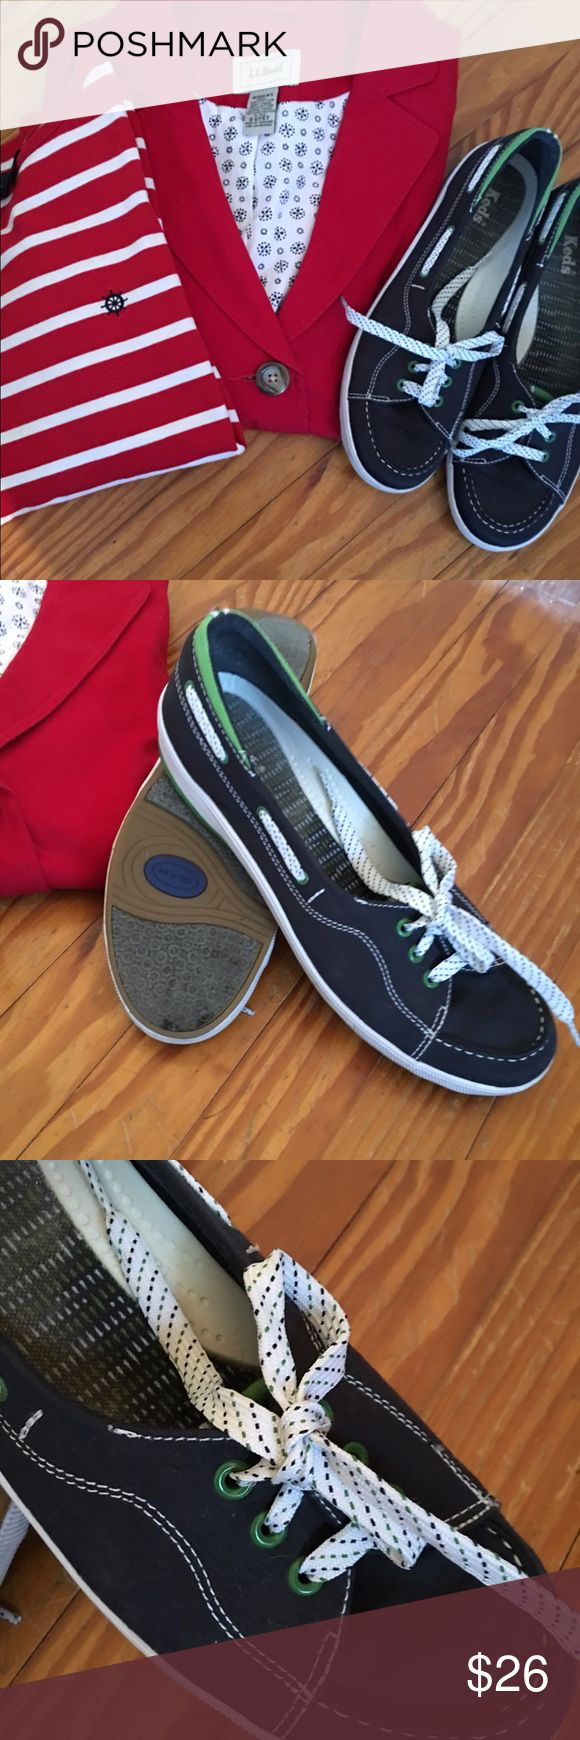 Keds Boat Shoes Navy canvas boat shoe style with lime green eyelets and trim. Dotted shoelaces. Non-slip soles. Perfect condition. keds Shoes Flats & Loafers